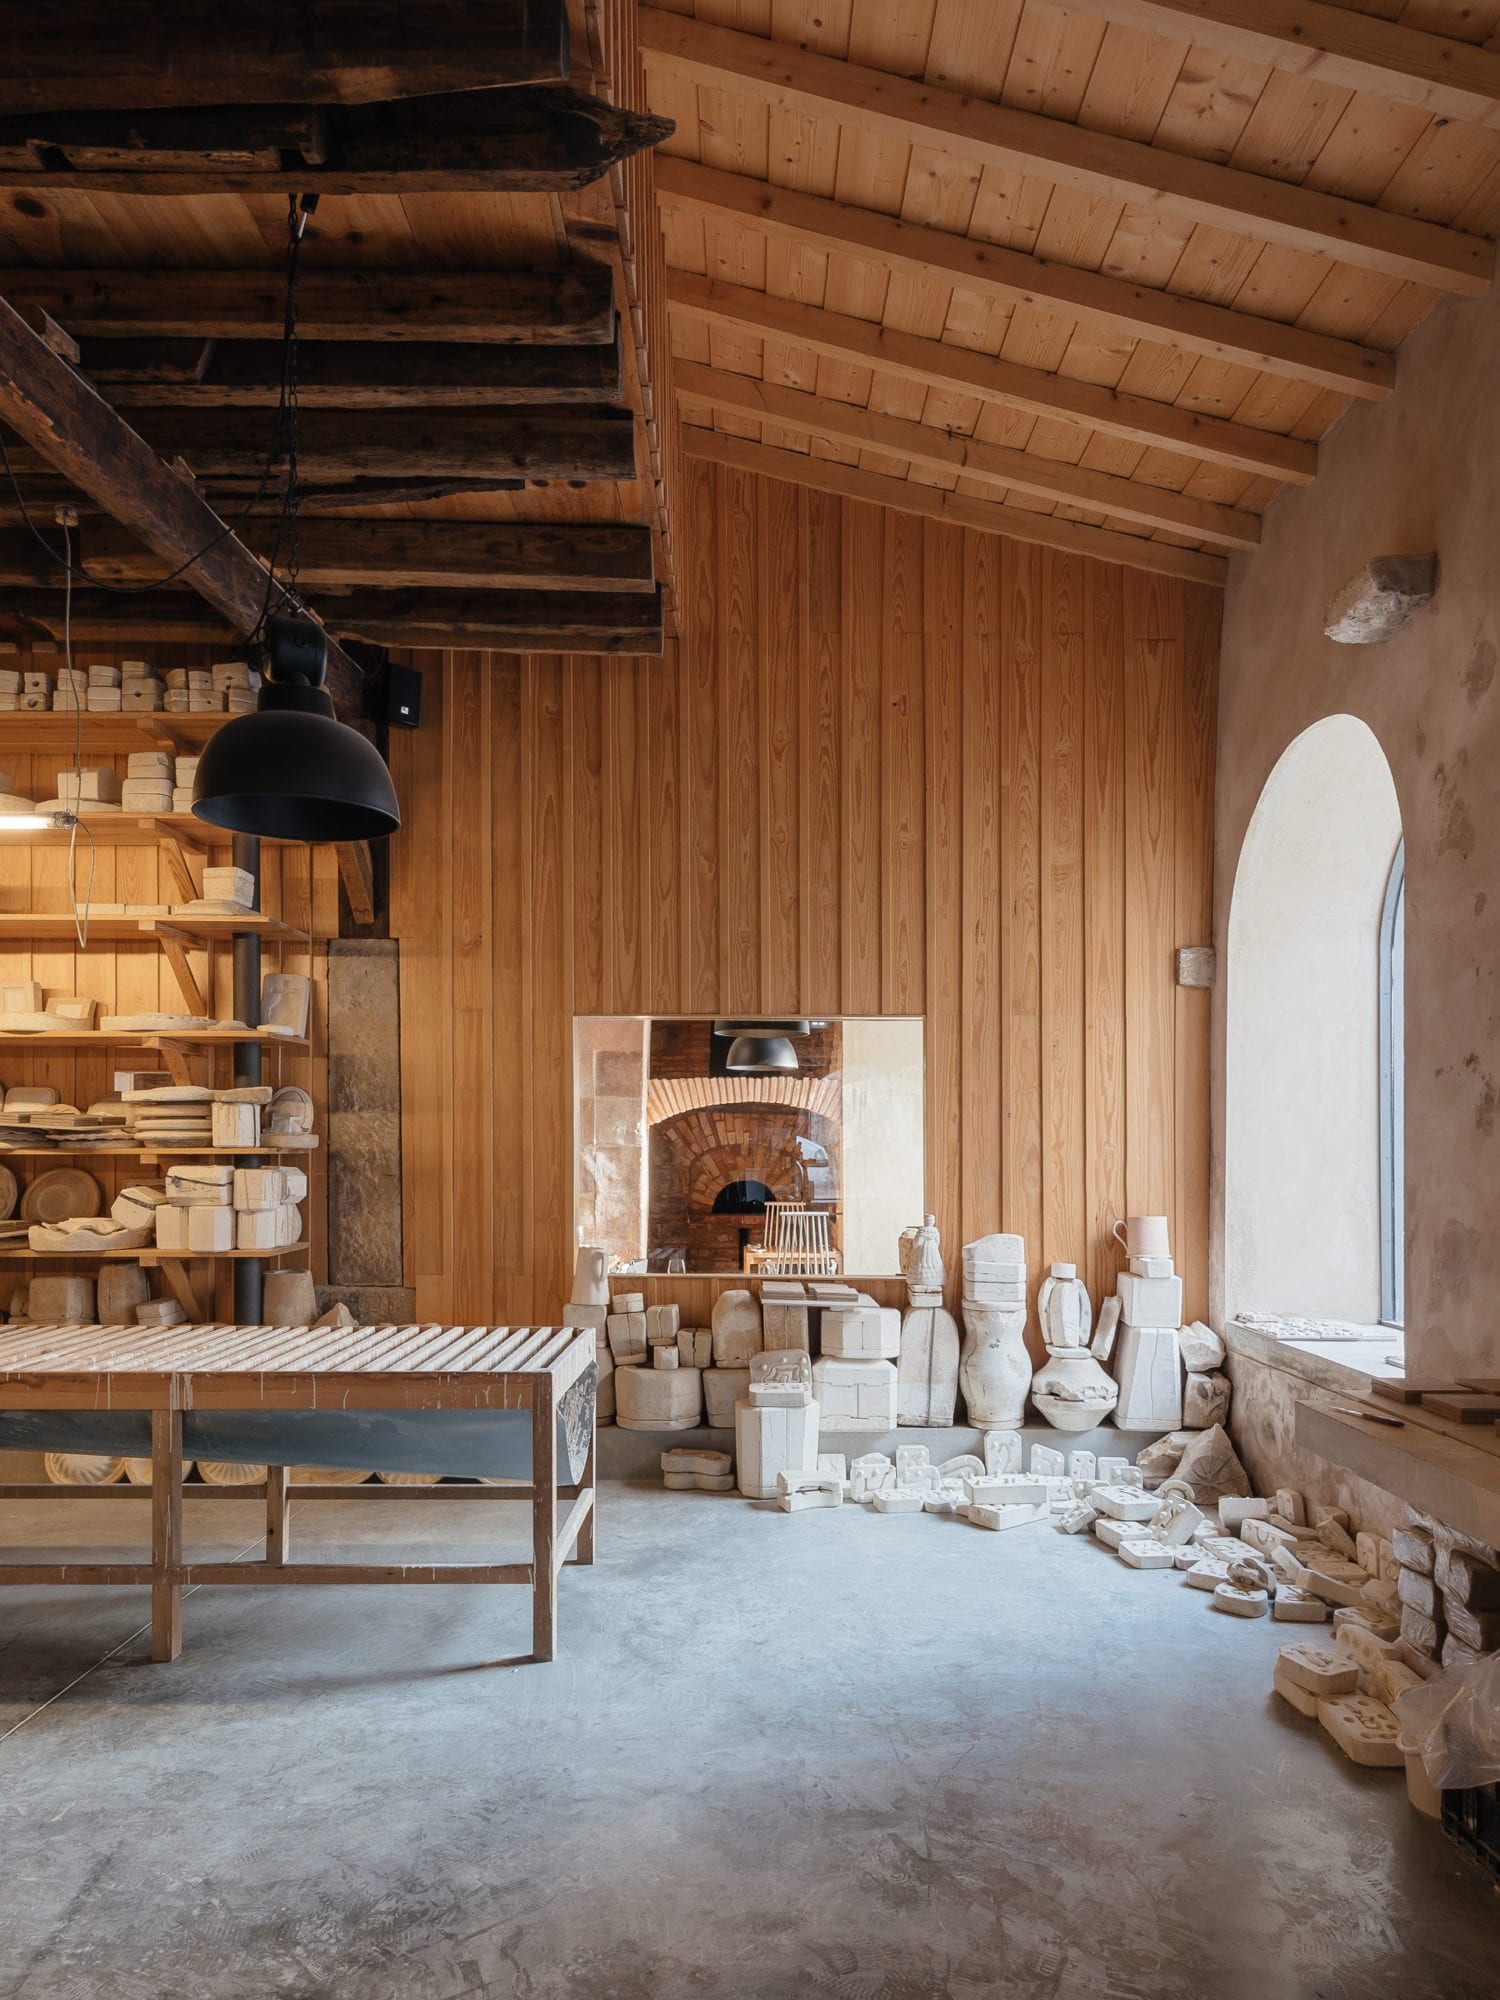 Luisa Bebiano And Atelier Do Corvo Renovation Old Ceramic Society Of Coimbra 18th Century Building Yellowtrace 11